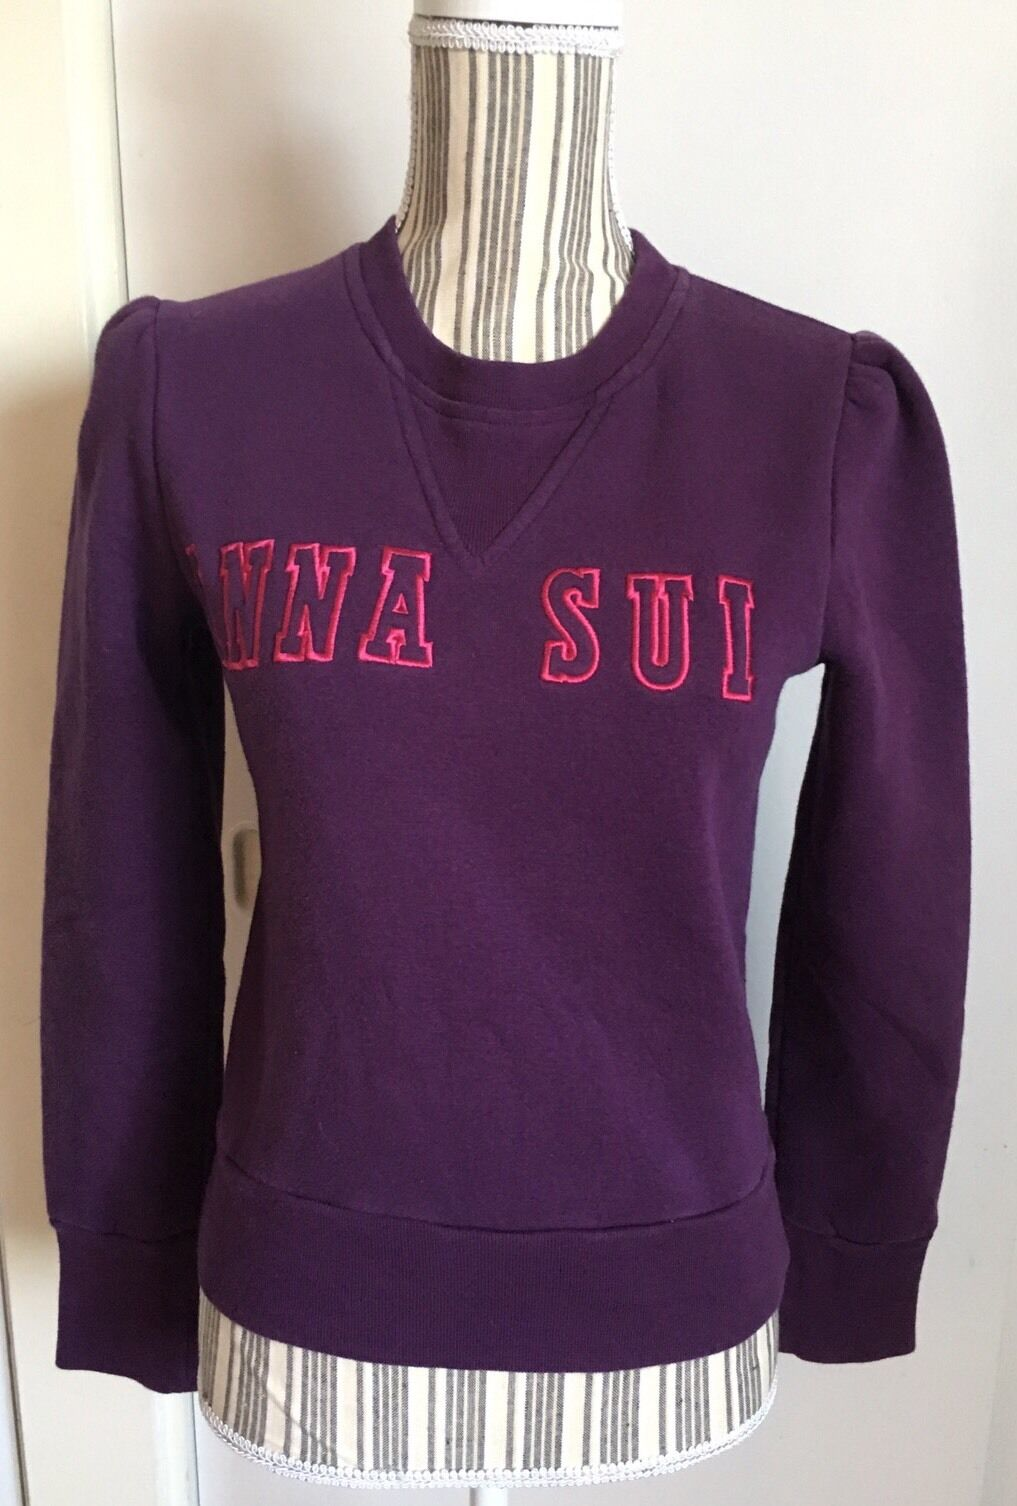 ANNA SUI Monogramed Embroidered Sweatshirt Purple Size Small